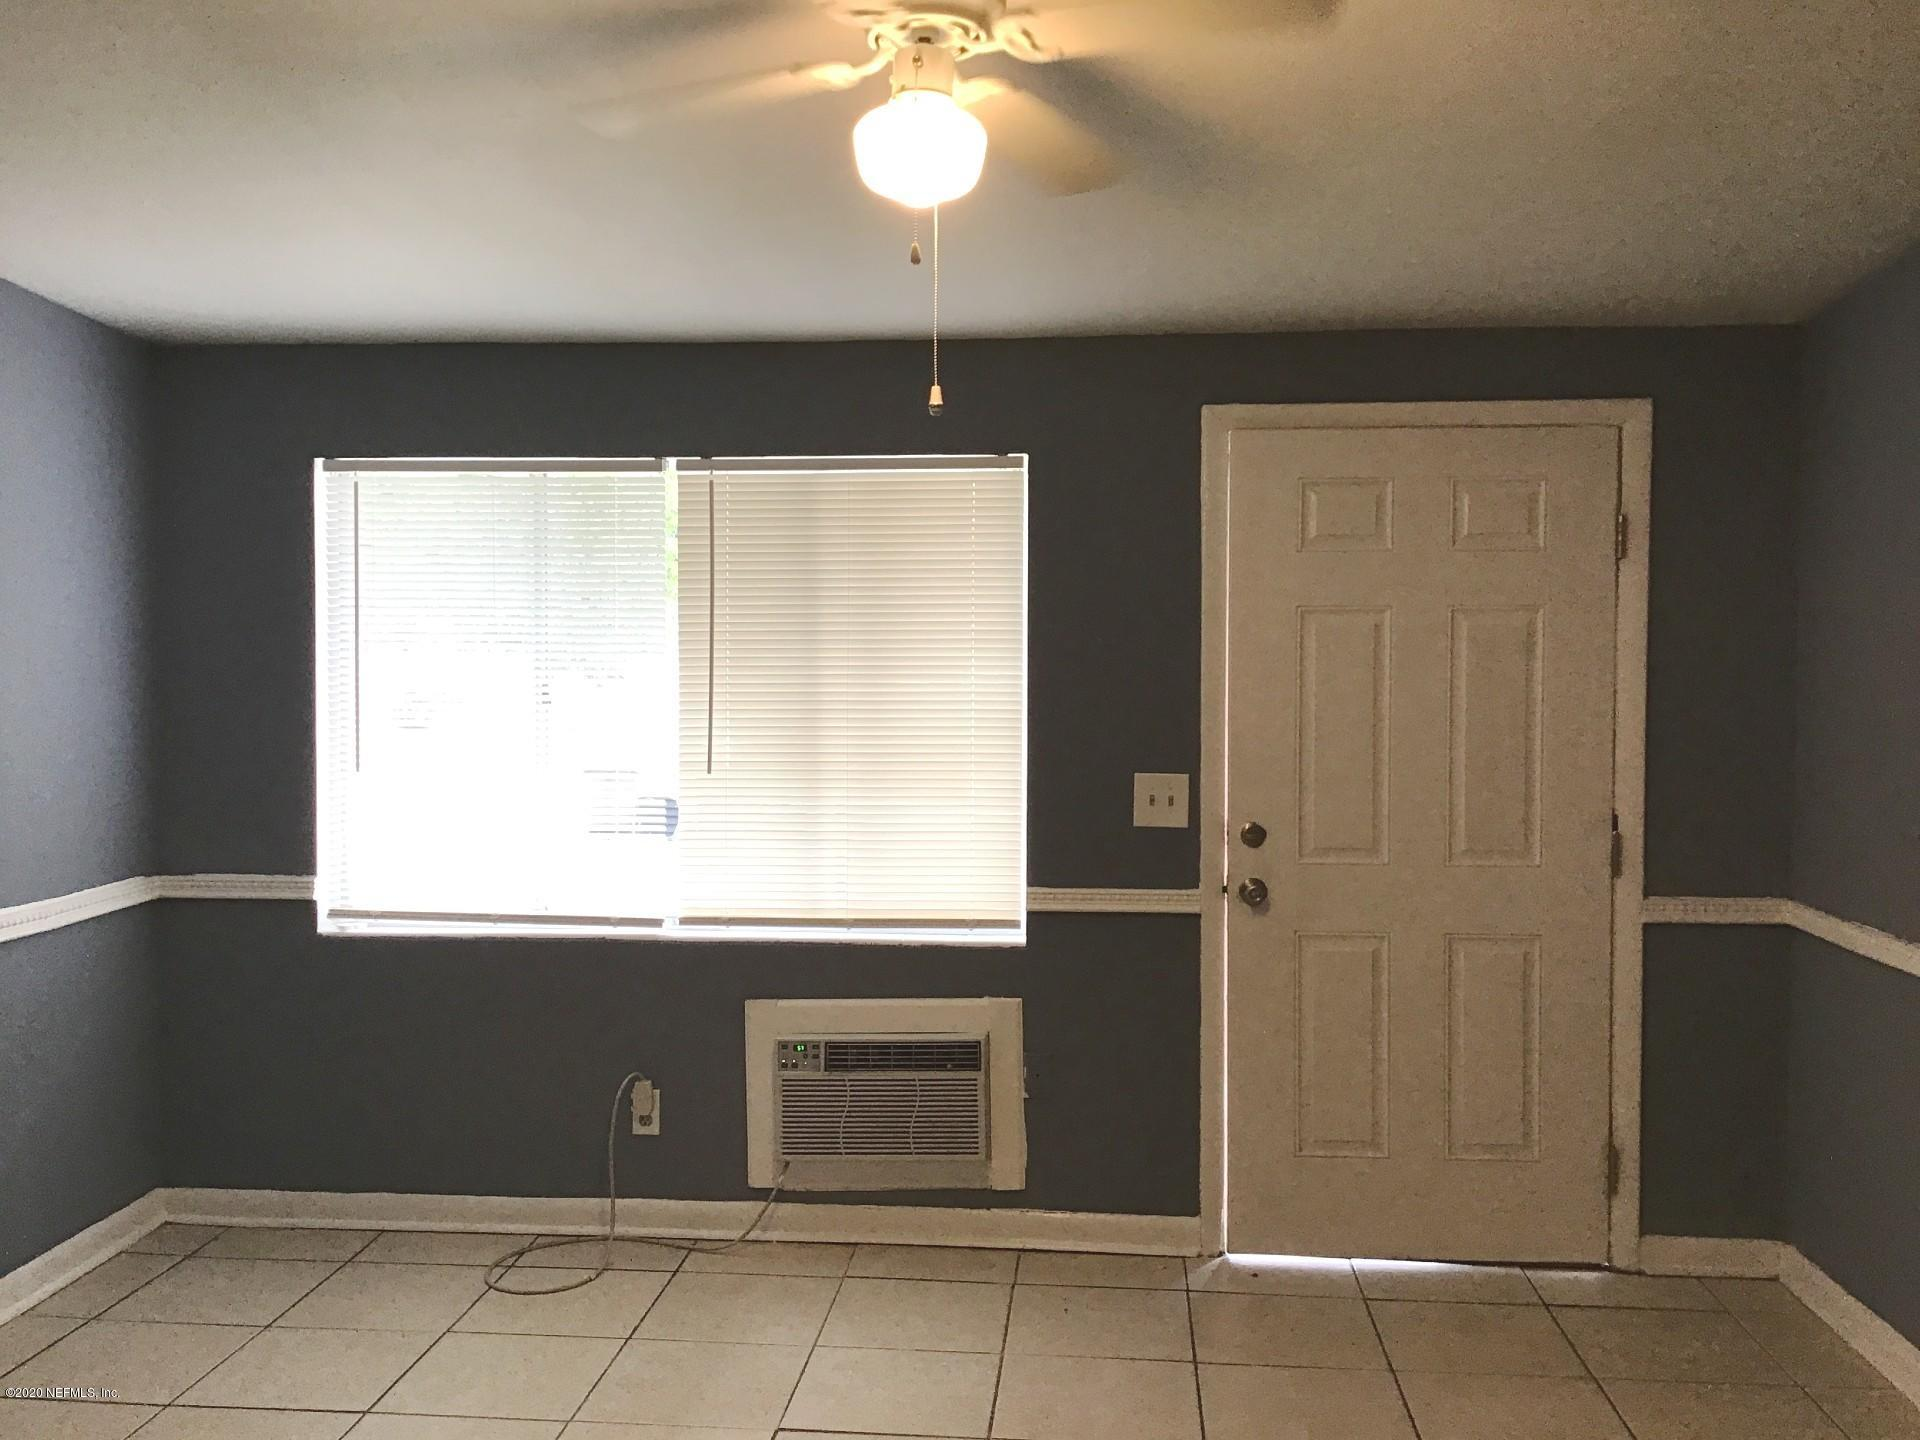 1861 DOYON, JACKSONVILLE, FLORIDA 32210, 2 Bedrooms Bedrooms, ,1 BathroomBathrooms,Rental,For Rent,DOYON,1083243